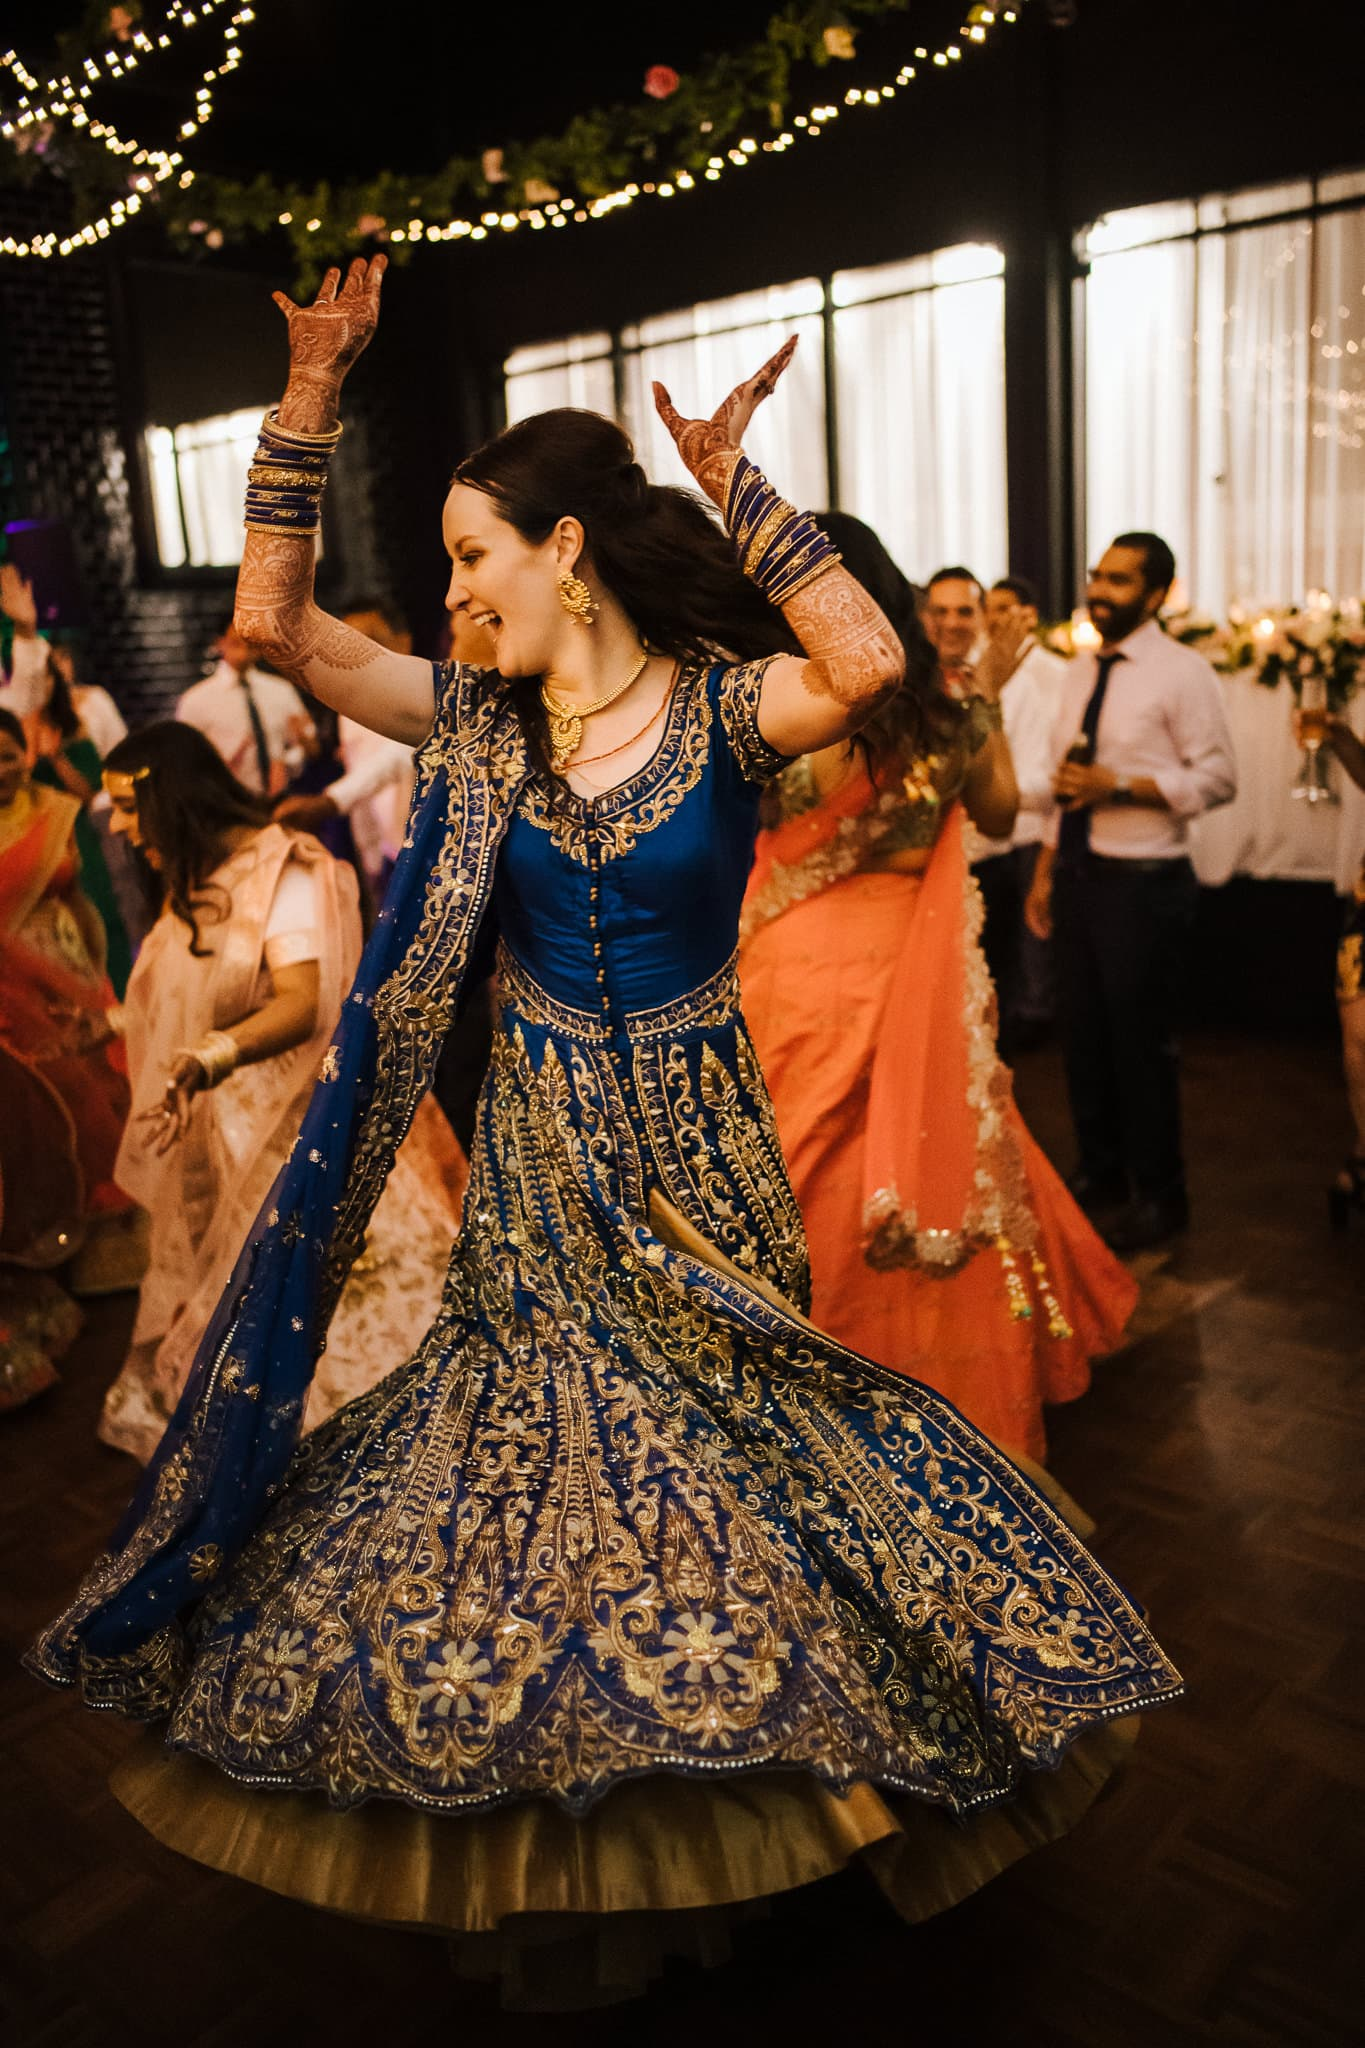 A Colourful Multicultural wedding in Melbourne.